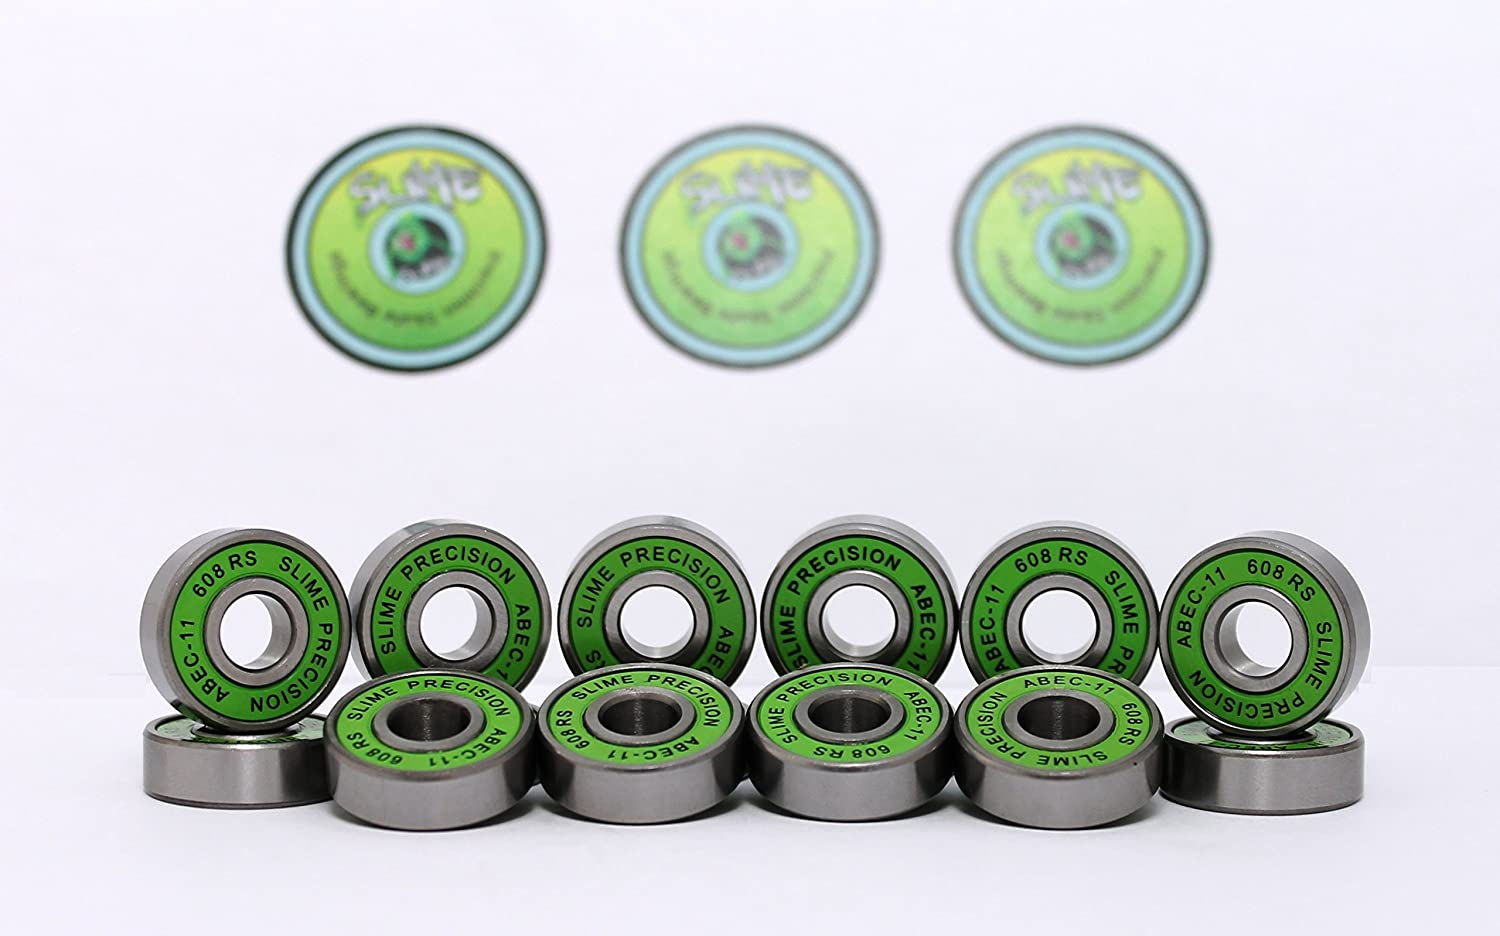 16 x GREEN SLIME - ABEC 11 608 RS Water Resistant Rubber Seal Skateboard / Stunt Scooter / Inline Skate Bearings SLIME Bearings